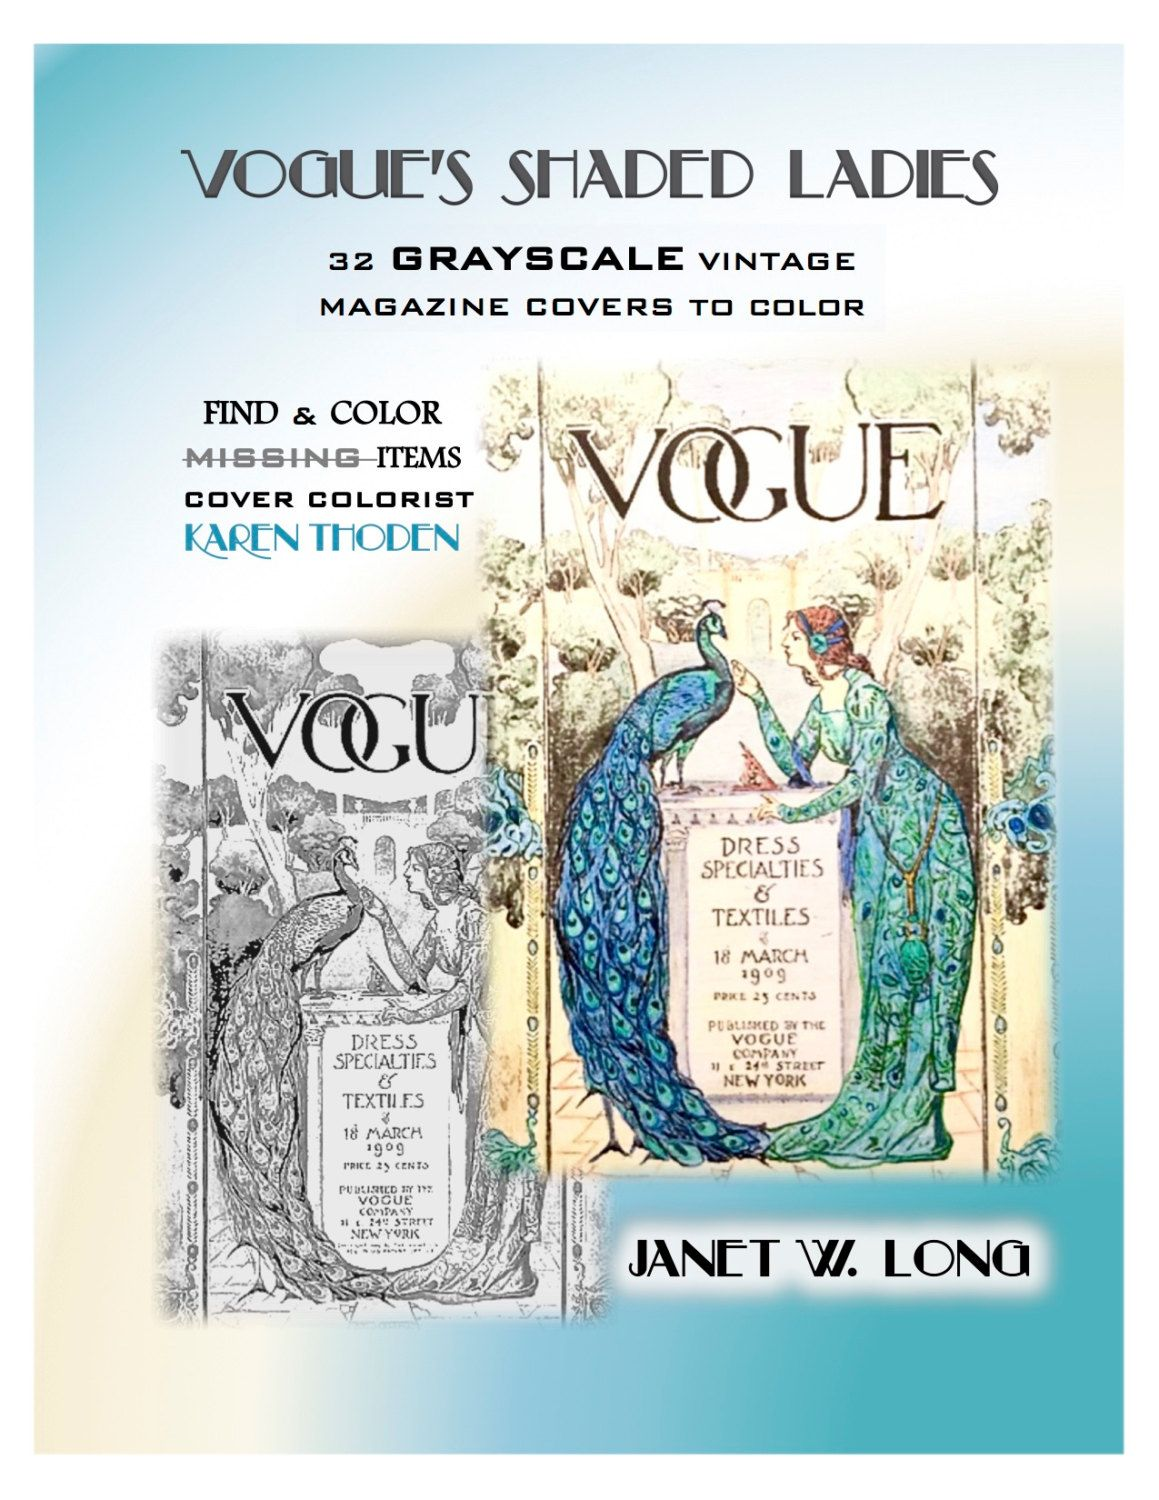 Color book download - Digital Download Vogue Grayscale Vintage Adult Coloring Book Vogue S Shaded Ladies Vintage Vogue Magazine Covers 1893